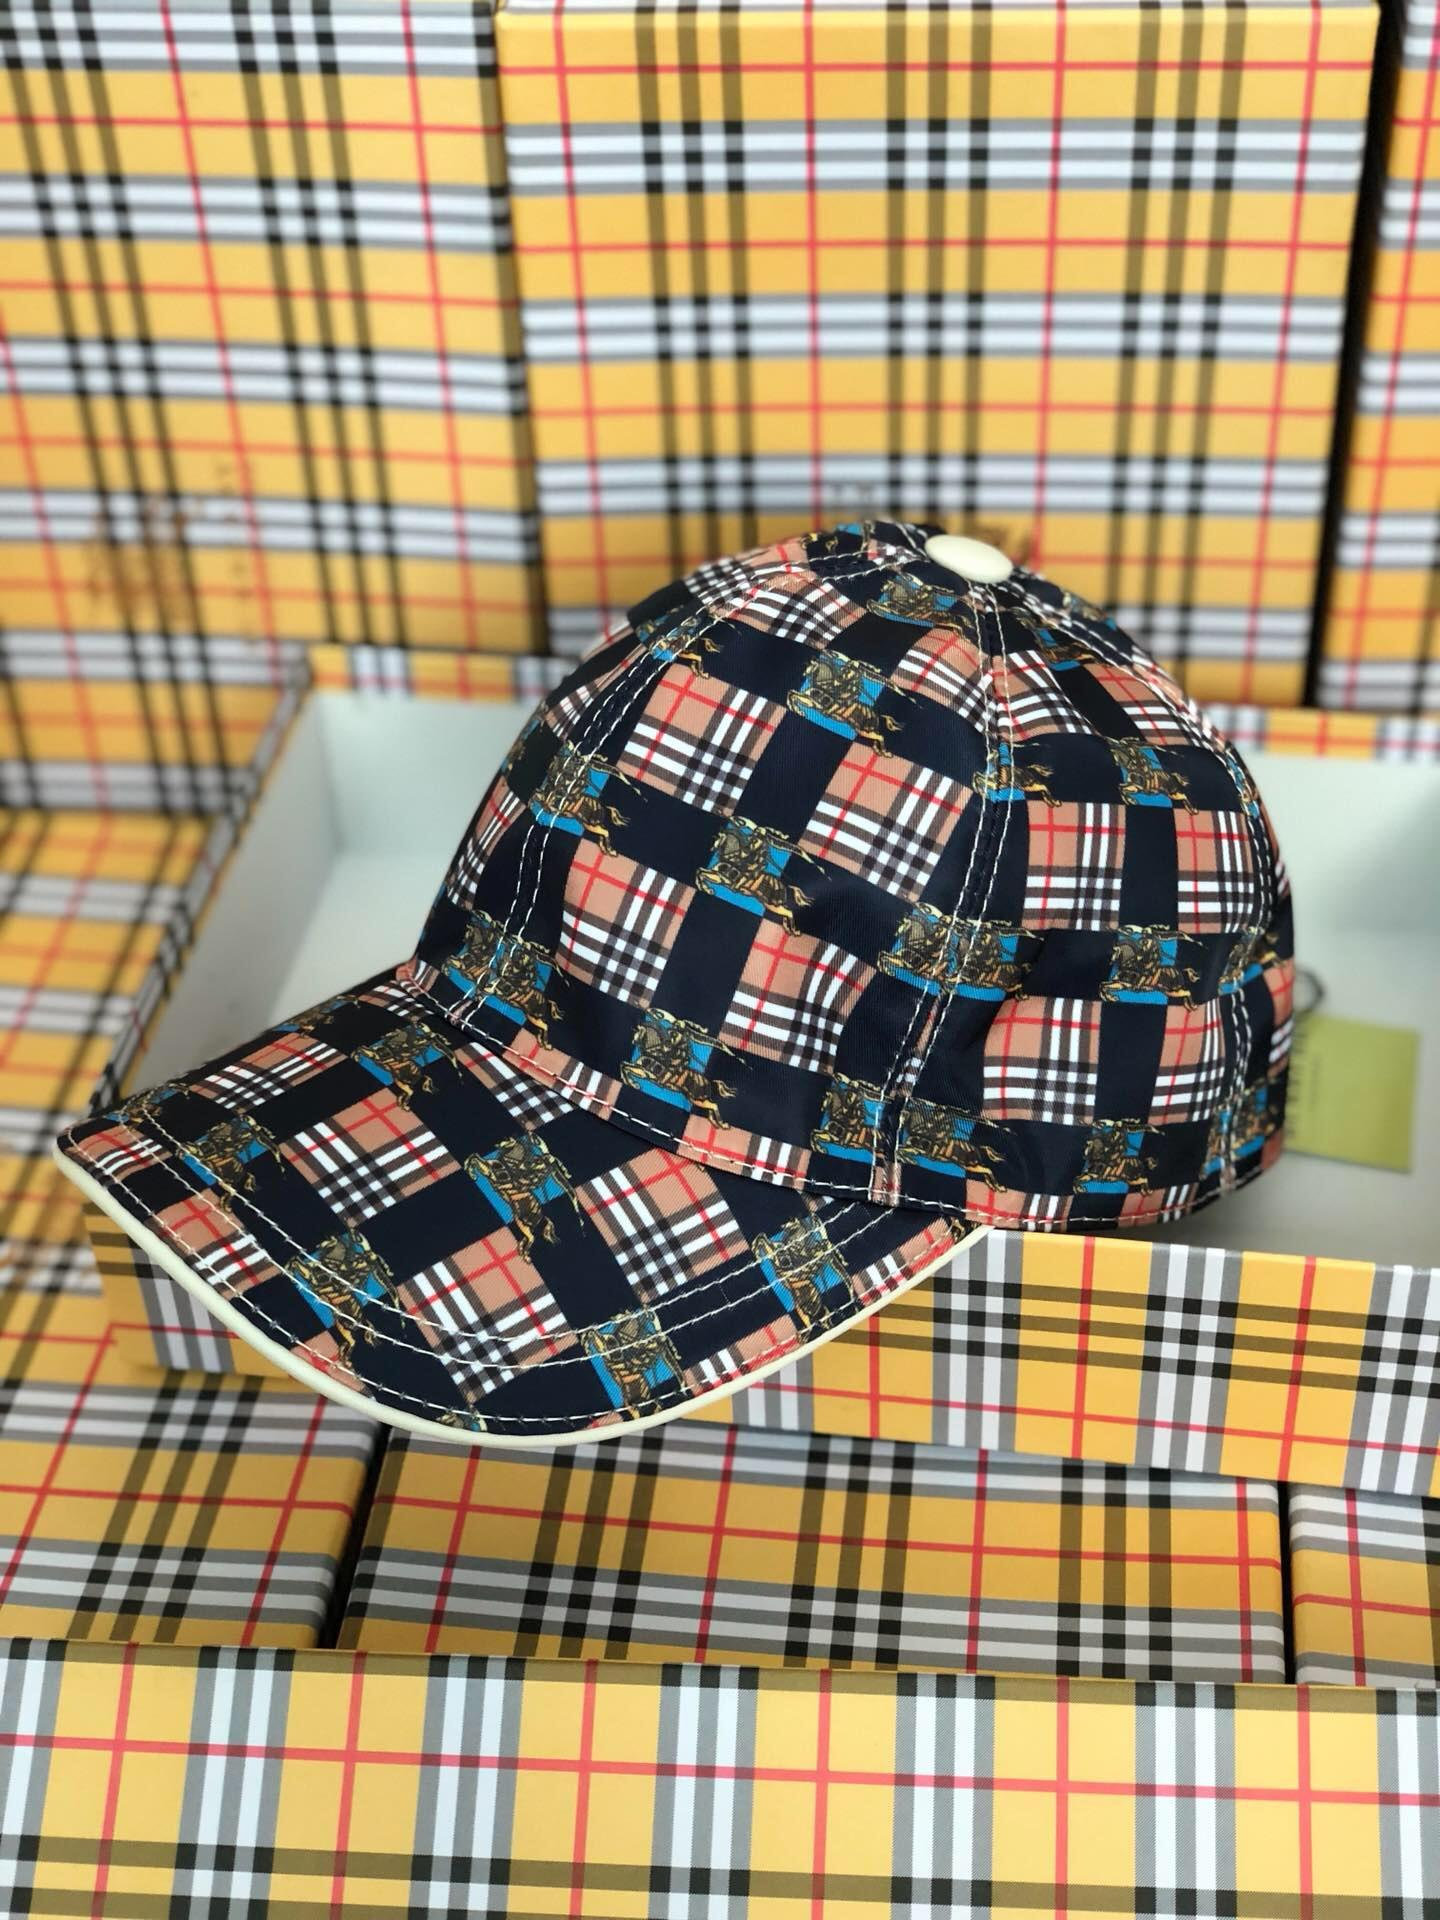 9d832670902ce 2019 Top Quality Celebrity Design Vintage Plaid Berets Cap Men Woman Canvas  Baseball Cap Cloches Stingy Brim Hats Visors 40762871 002 Army Hats Custom  Caps ...